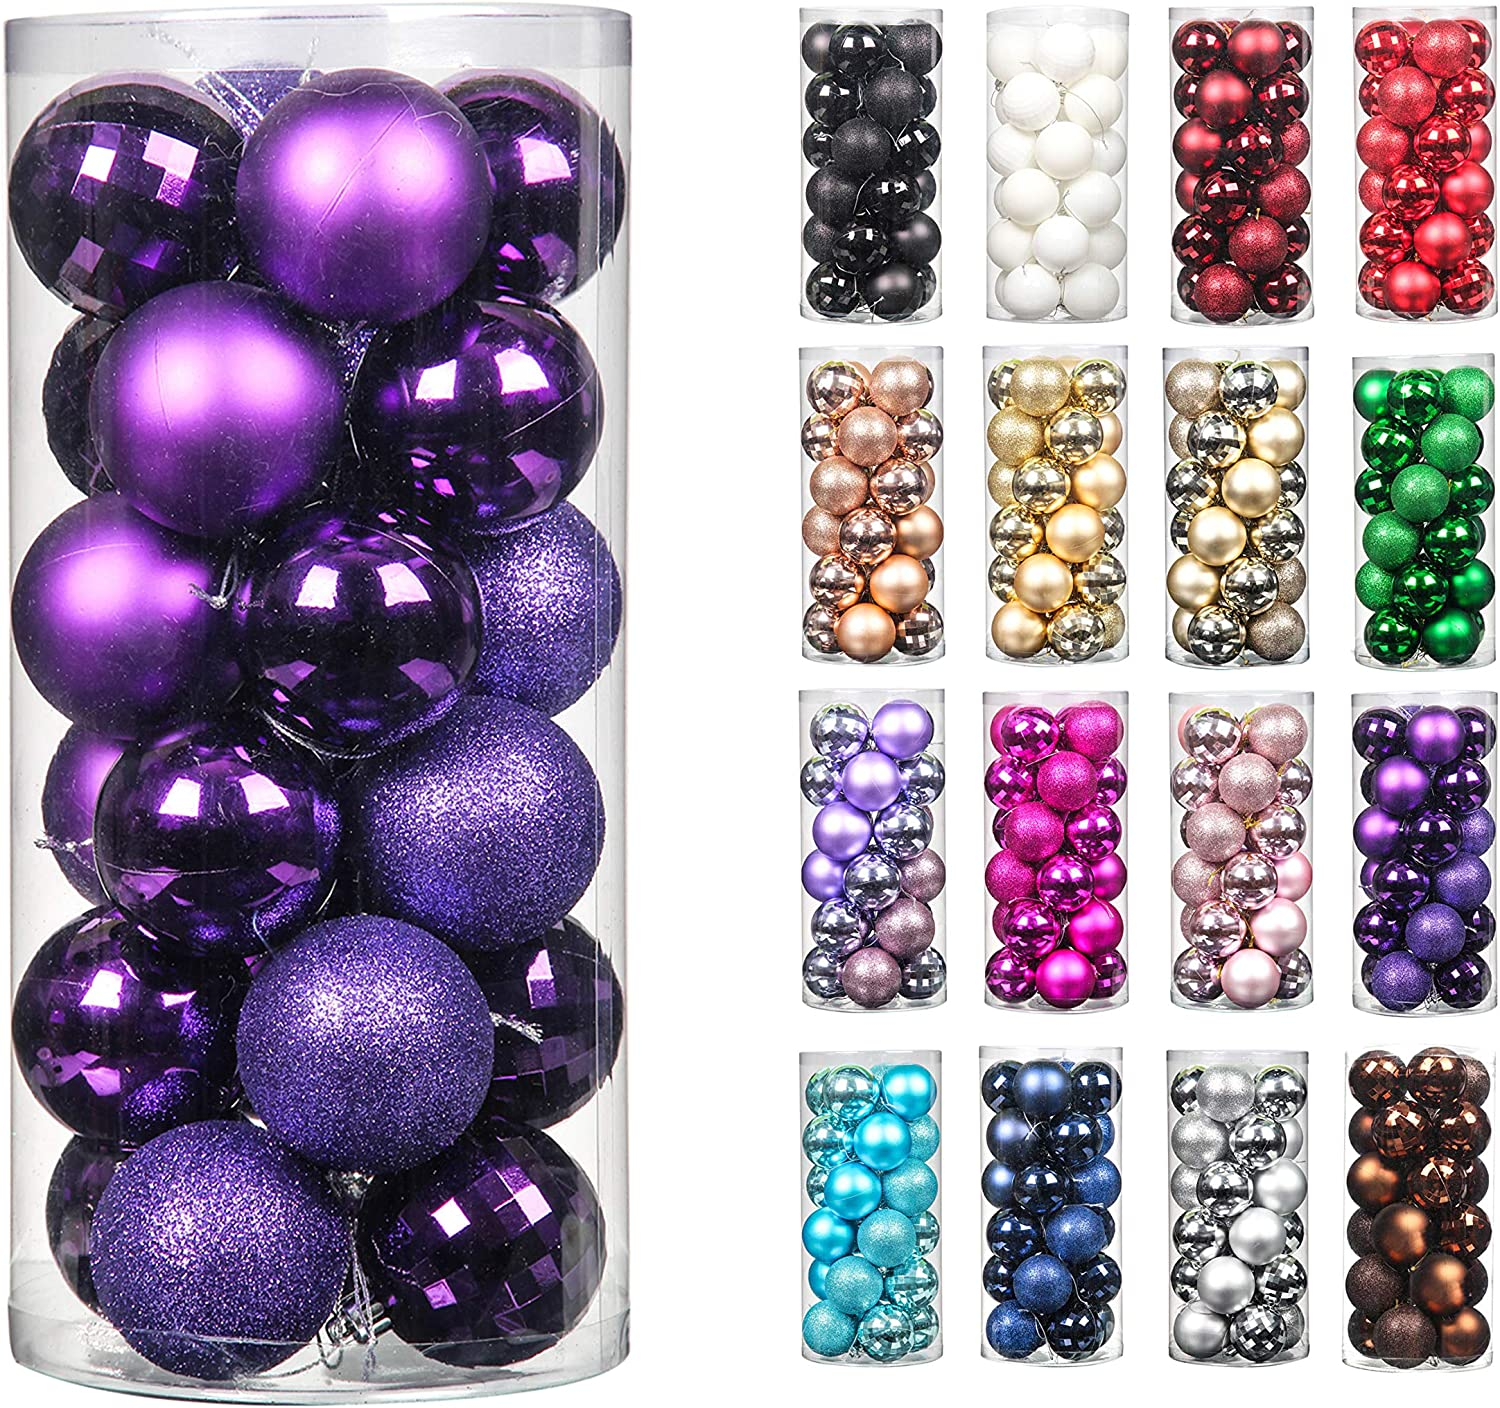 24pcs 2.36in Christmas Decoration Balls Shatterproof Color Set Ornaments Balls for Festival Wedding Home Party Decors Xmas Tree Hanging ( Purple)